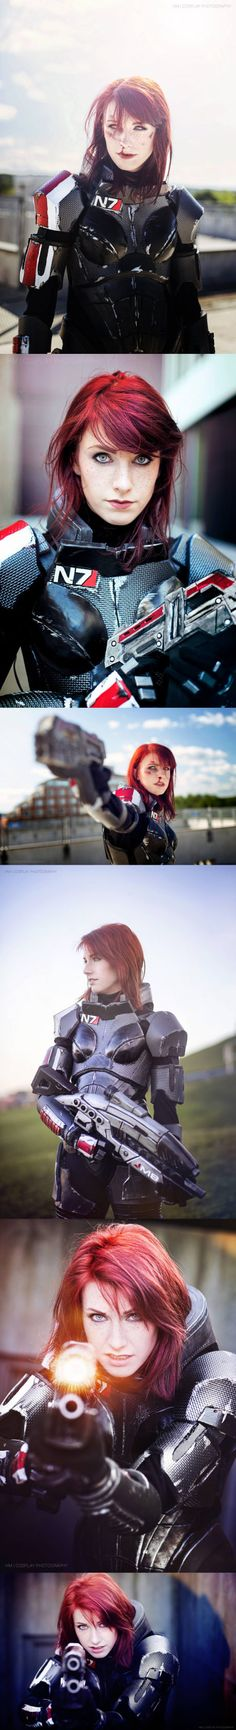 Femshep Cosplay - Mass Effect - COSPLAY IS BAEEE! Tap the pin now to grab yourself some BAE Cosplay leggings and shirts! From super hero fitness leggings, super hero fitness shirts, and so much more that wil make you say YASSS! Cosplay Anime, Epic Cosplay, Amazing Cosplay, Cosplay Girls, Cosplay Outfits, Mass Effect Cosplay, Cosplay Characters, Pokemon, Cool Costumes